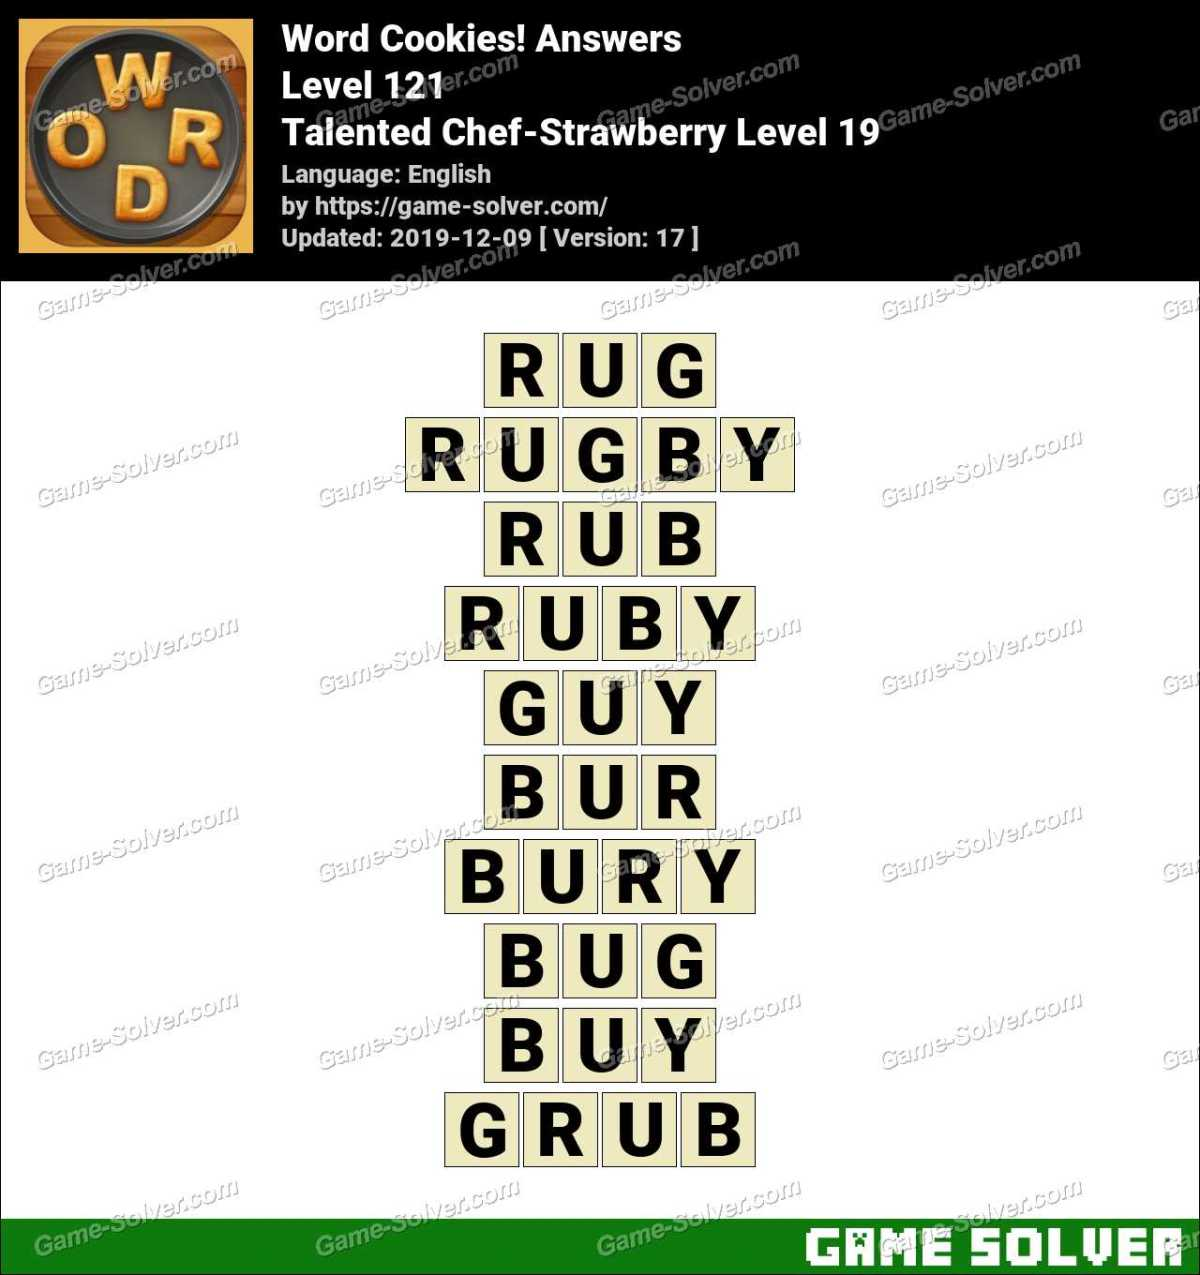 Word Cookies Talented Chef-Strawberry Level 19 Answers